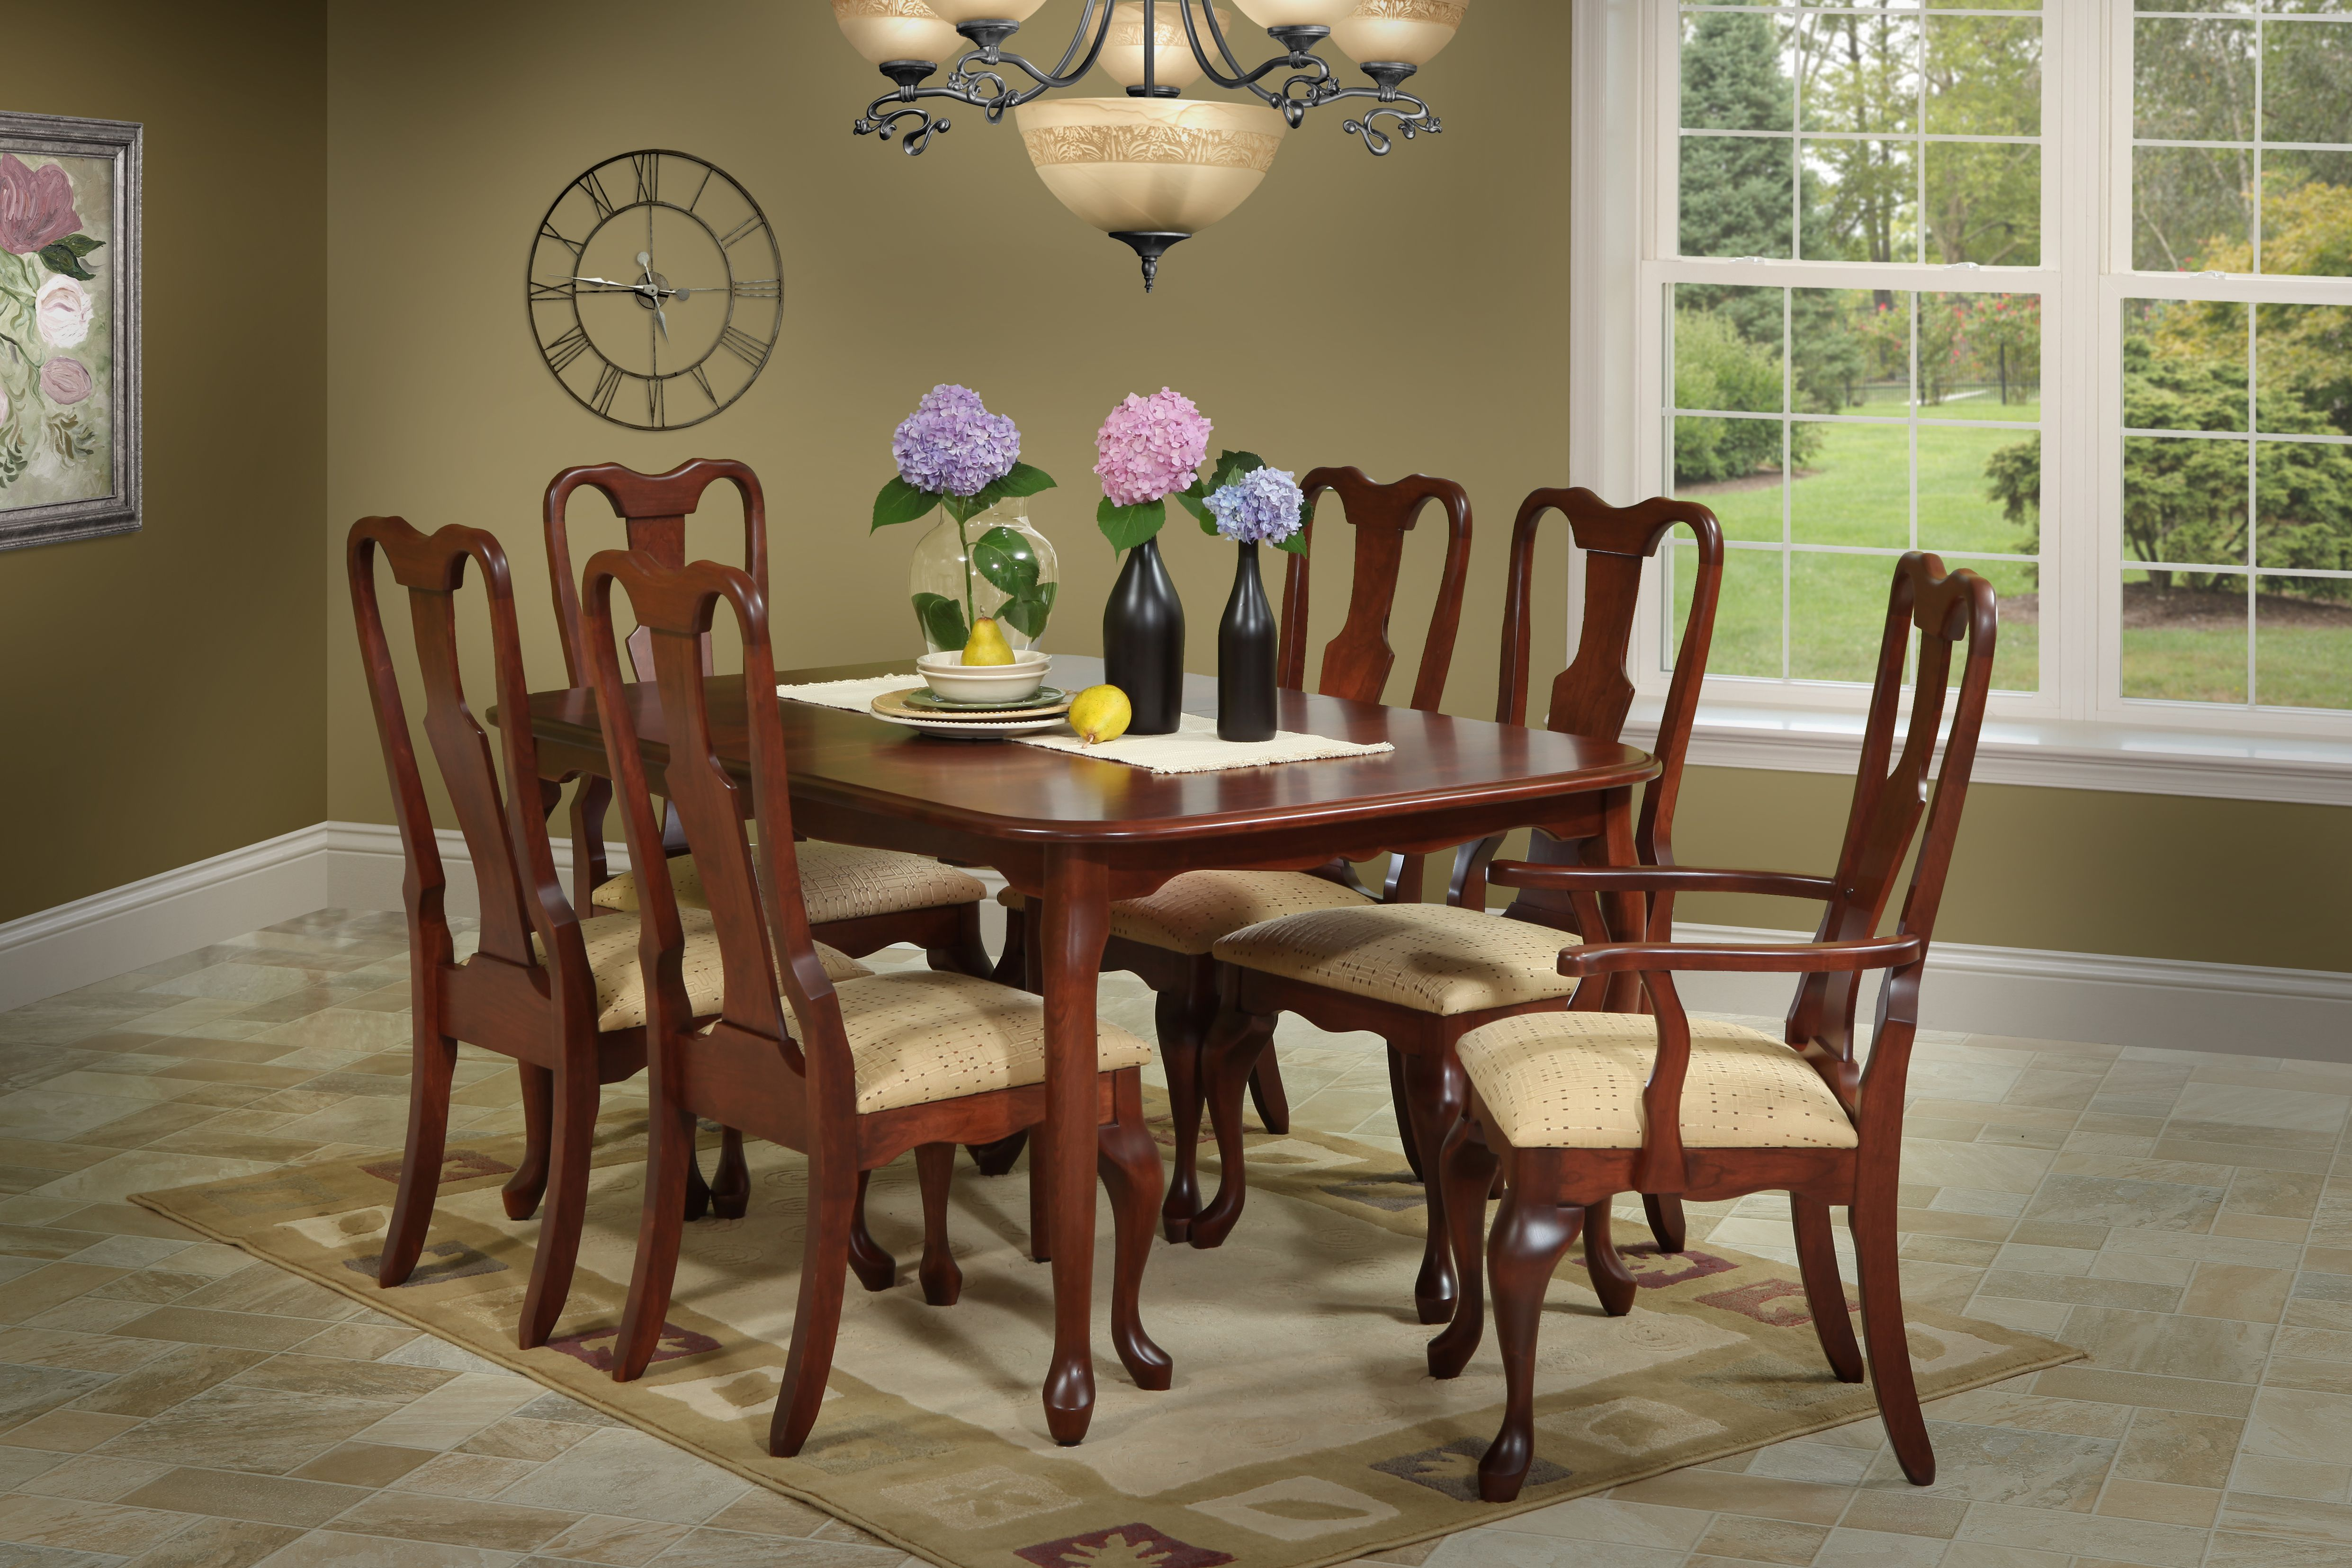 Cherry Queen Anne Dining Room Table And Chairs Solid Hardwood Built To Order In The Usa Wooden Dining Room Table Upholstered Seating Dining Room Sets